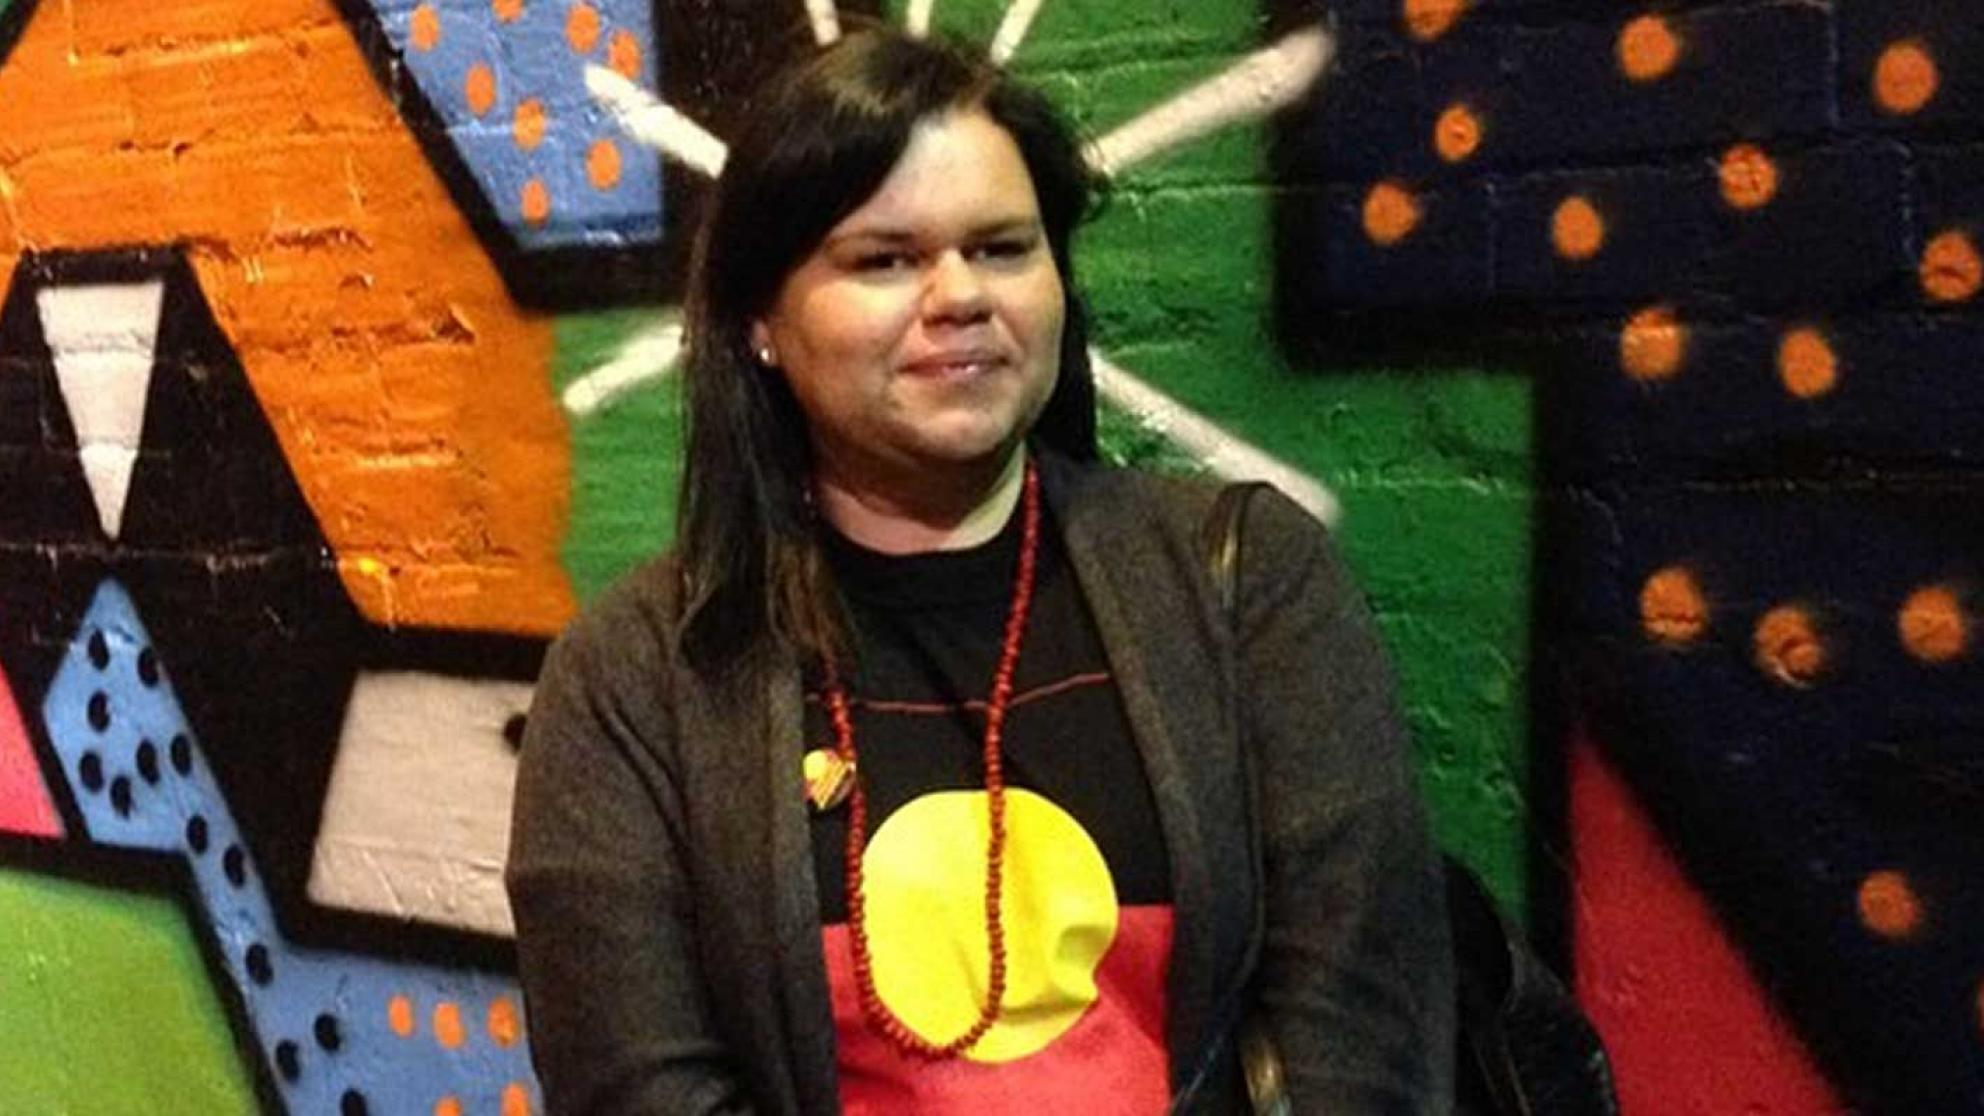 Tasha James standing in front of a colourful wall and wearing shirt bearing the Aboriginal flag